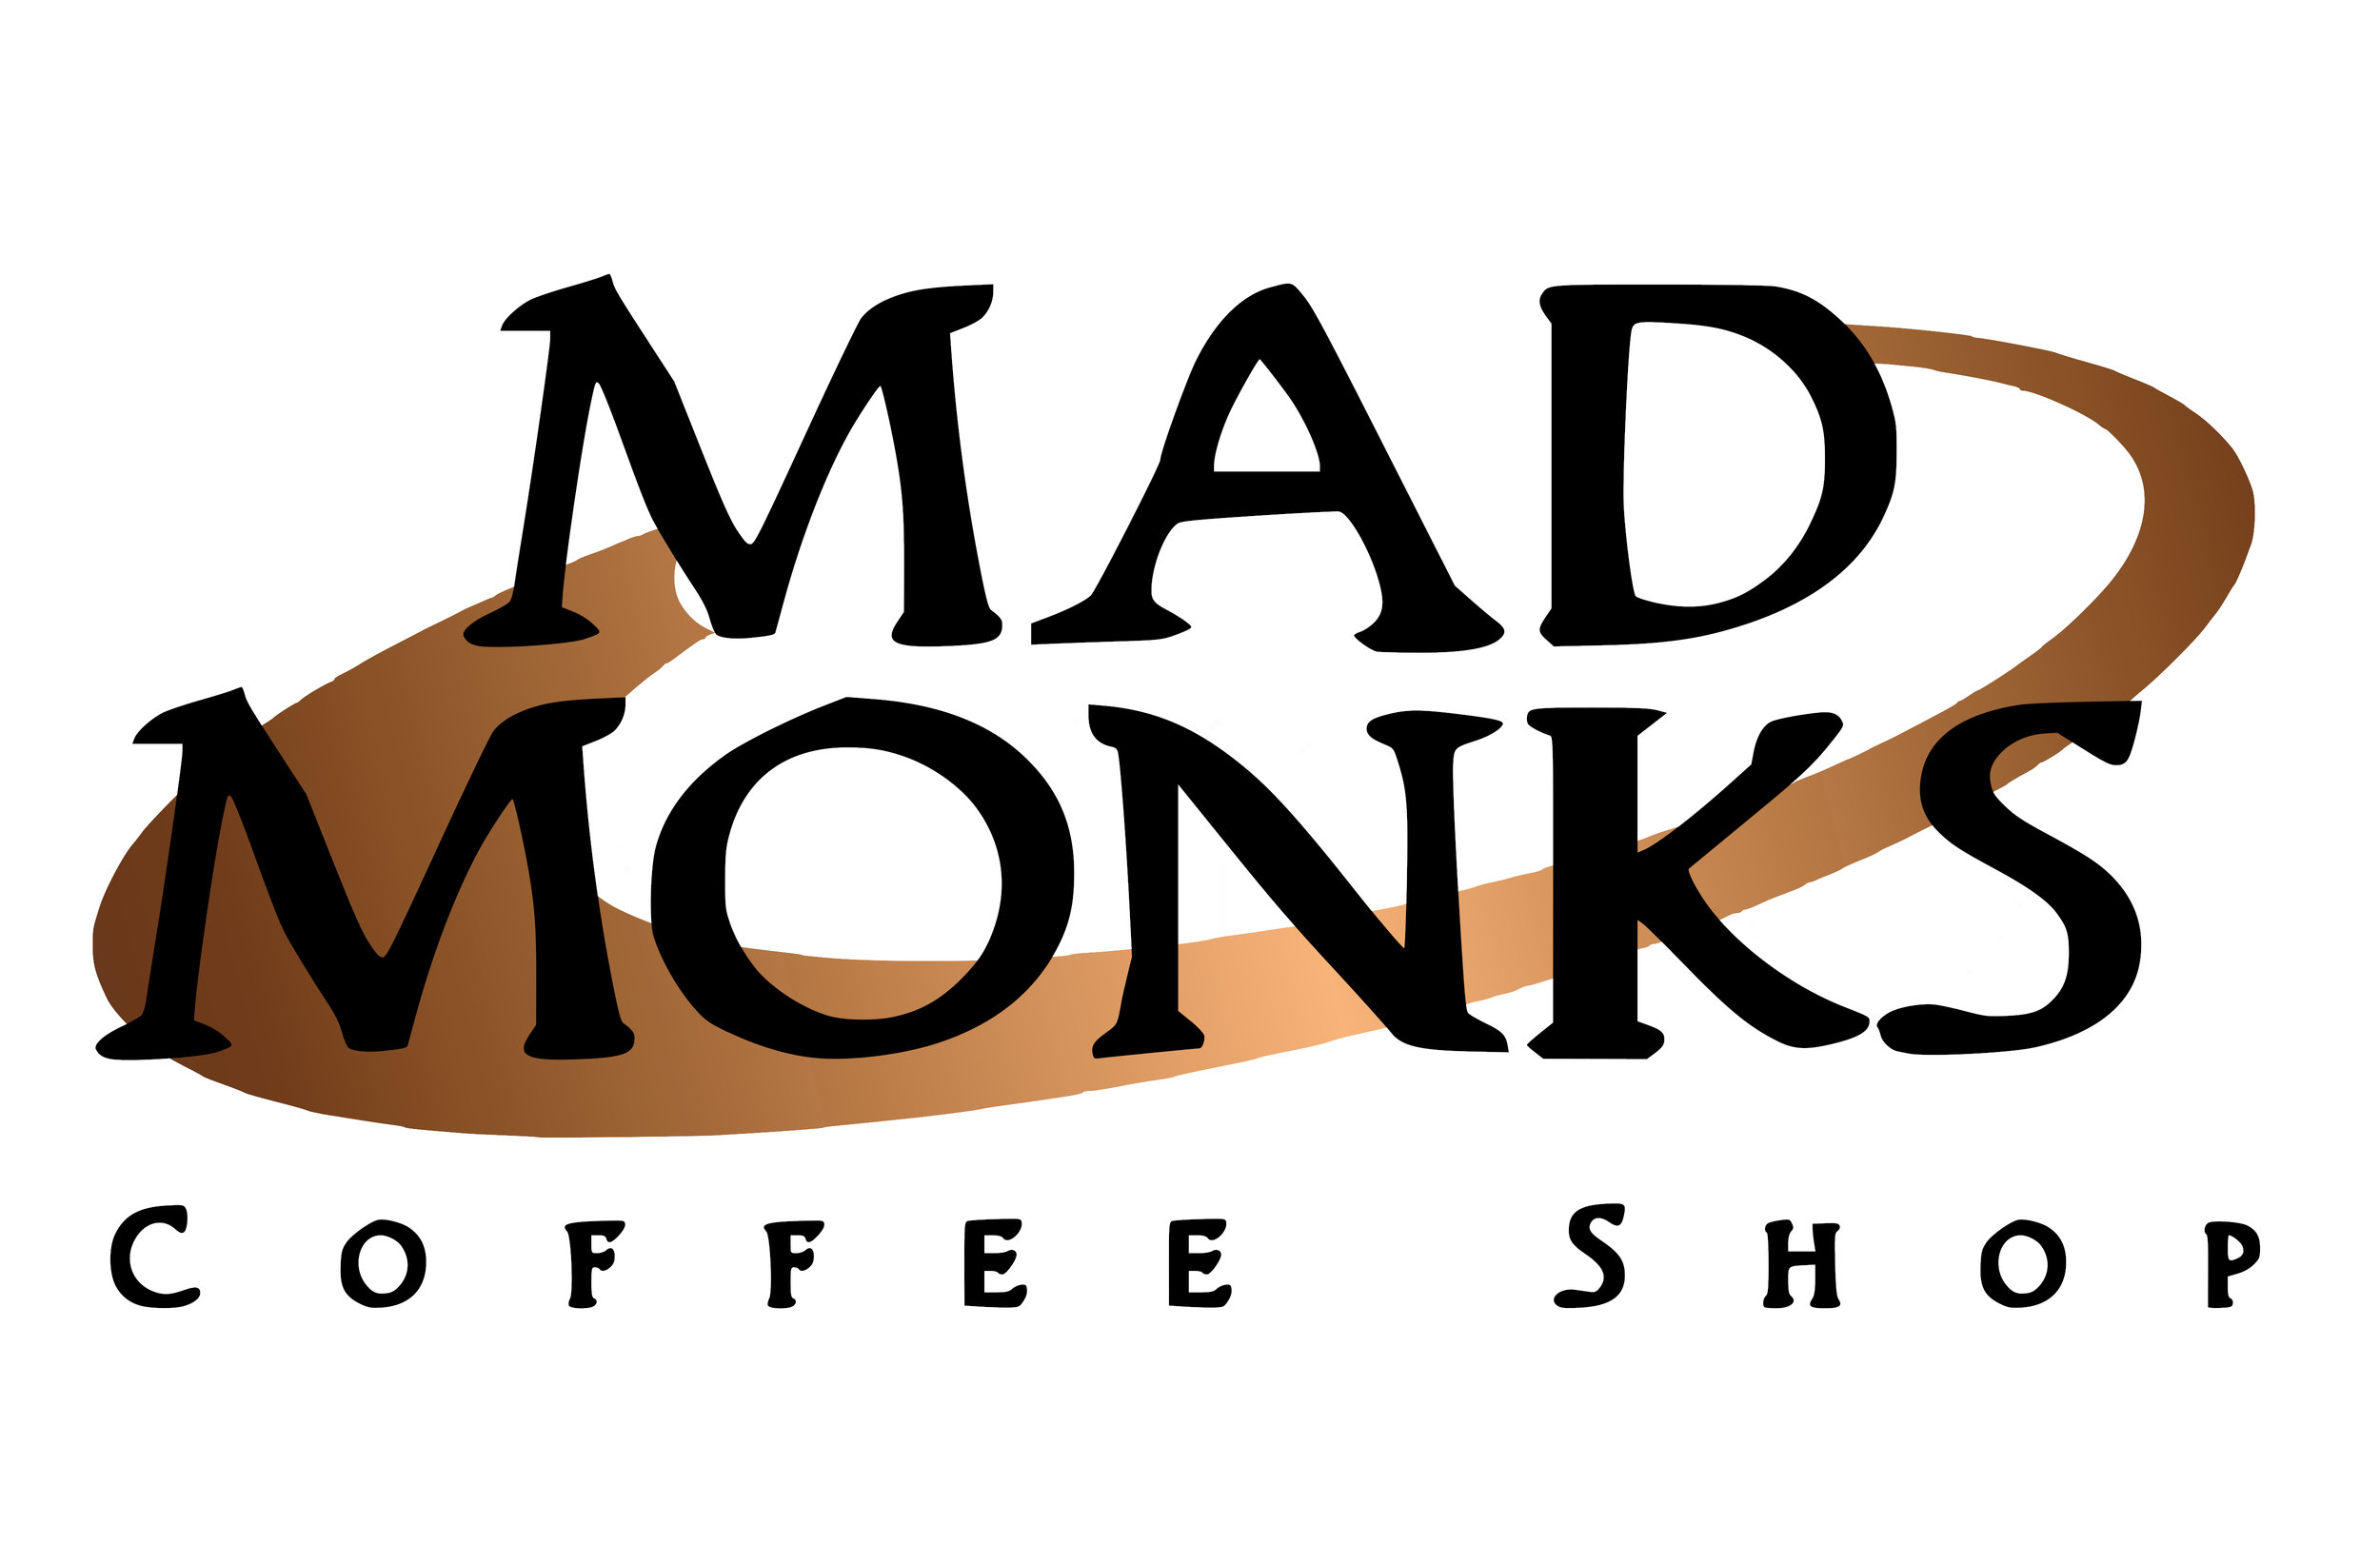 MAD MONKS COFFEE SHOP - Mad Monks is a monastery-owned and operated coffee and bread shop, where we encourage slowing down, connecting with neighbors and experiencing out-of-this-world coffee made with love, so that our days in-the-world become more human. We seek to provide an oasis of peace and human flourishing that can rejuvenate all who pass through for the rest of their journey.